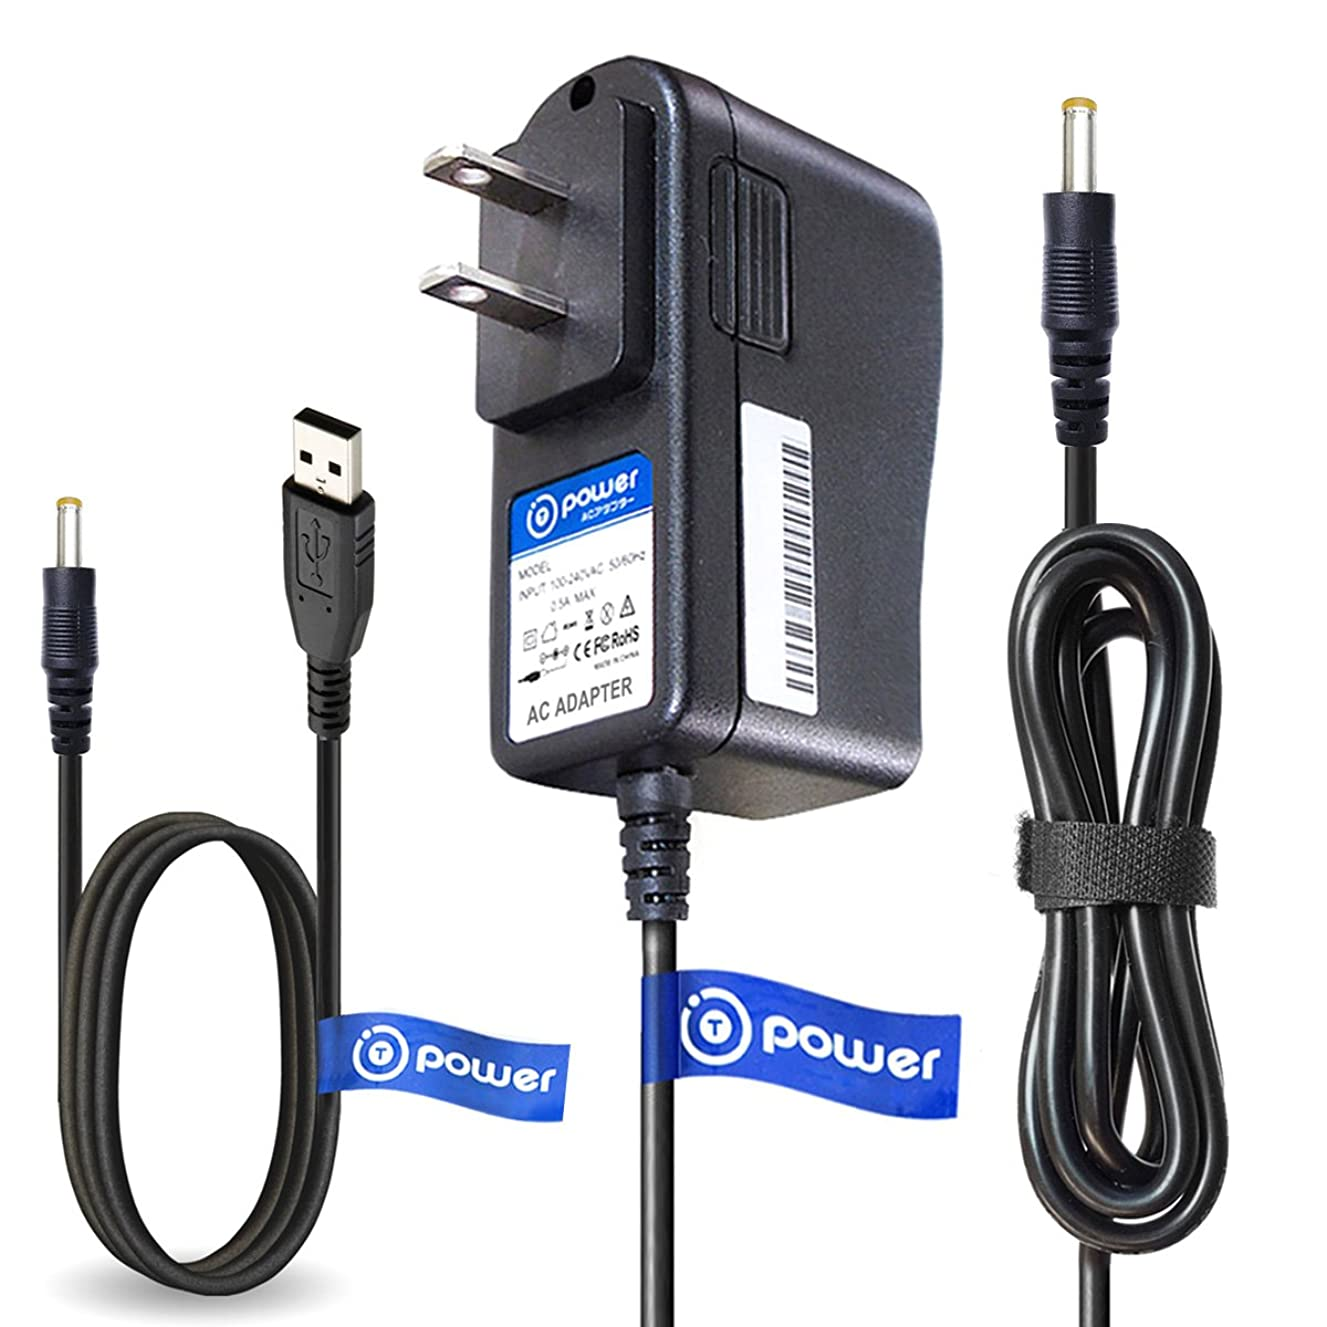 T-Power AC Adapter USB Cord Compatible with Fujifilm Instax Share Smartphone Printer SP-1 SP1 Instax(R) Share AC-5VX BKA-AC5VN AC-5VS, AC-5VC, AC-5VN, AC-5VW, AC-5V,AC-5VH, AC-5VHS, AC-5VX, 600005538